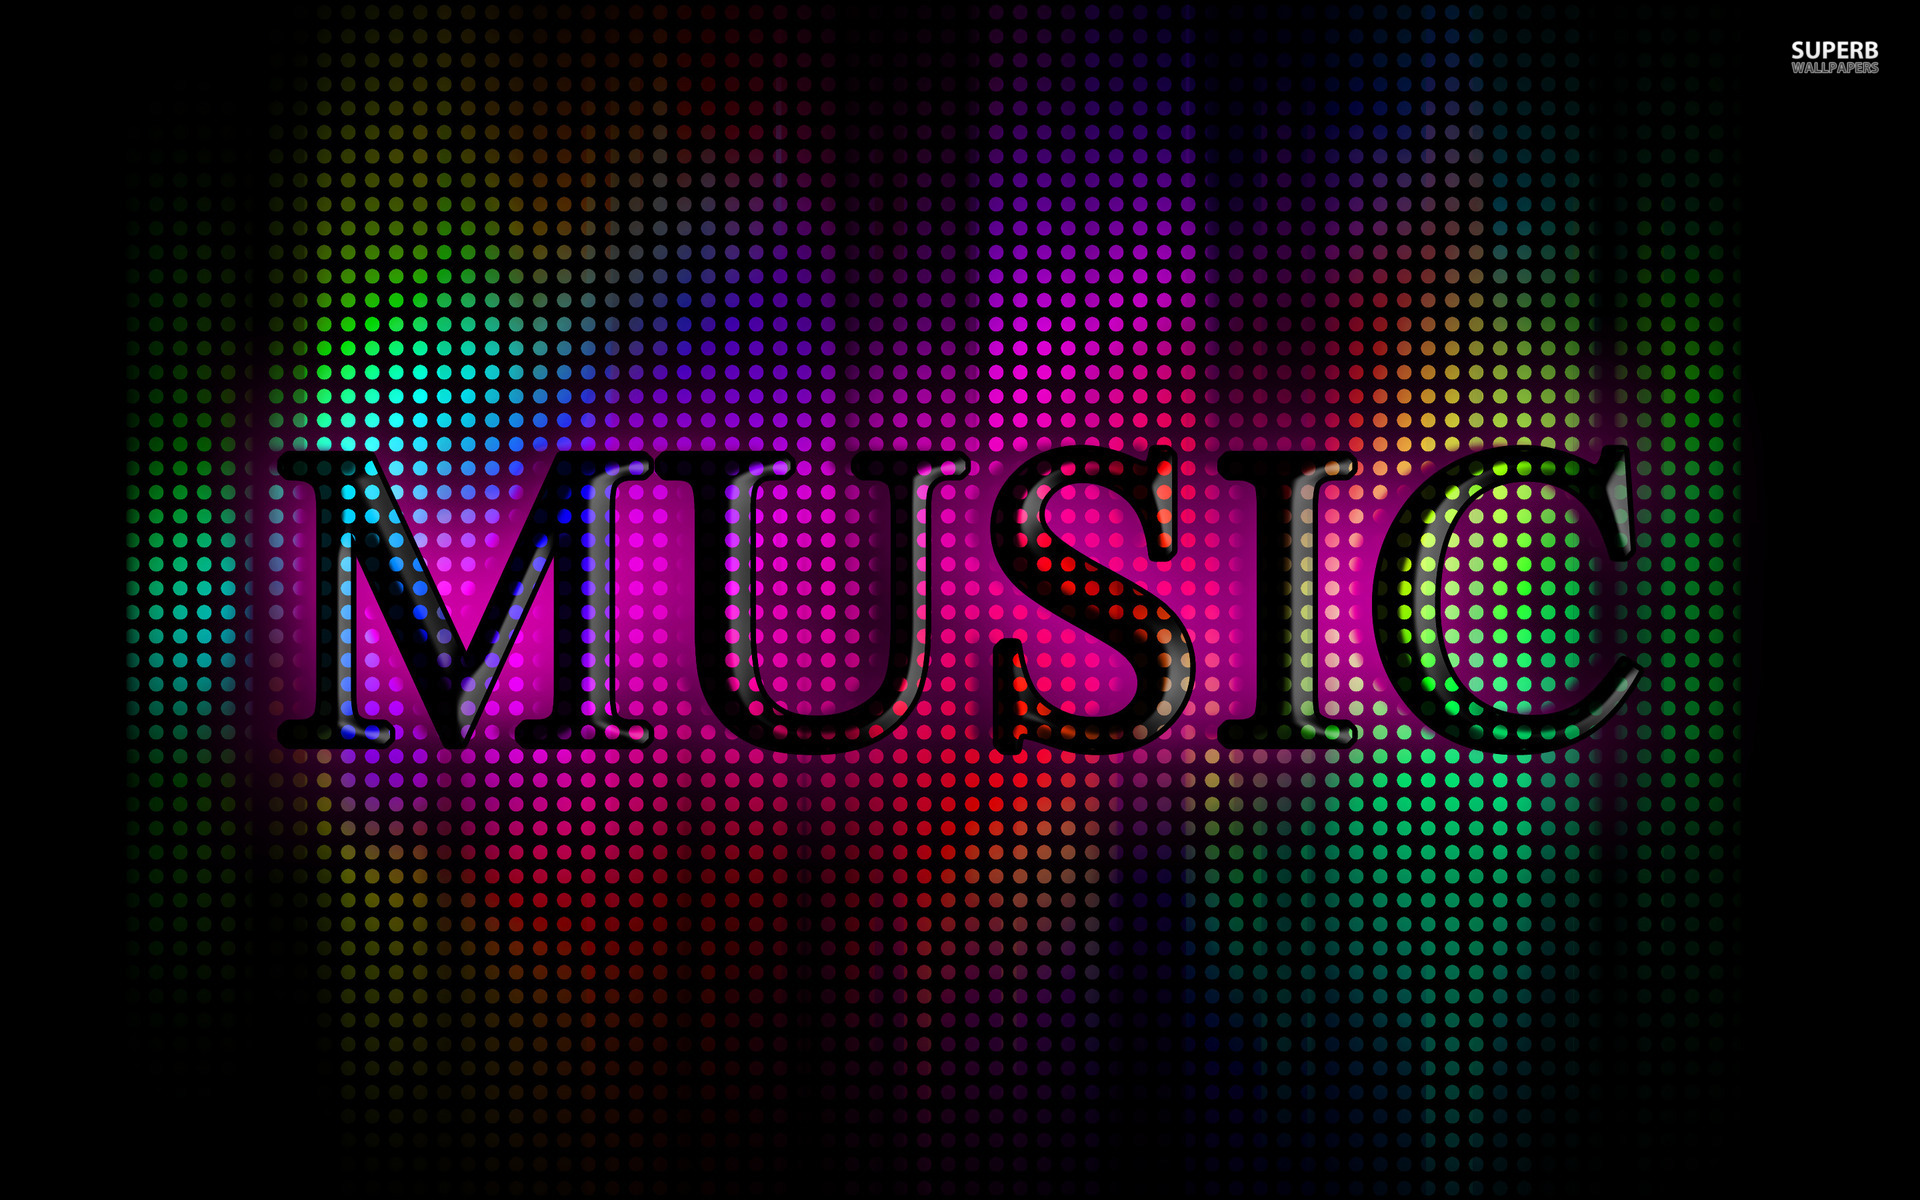 Colorful Music Notes In A Lin Hd Wallpaper Background Images: Colorful Music Wallpapers (46 Wallpapers)